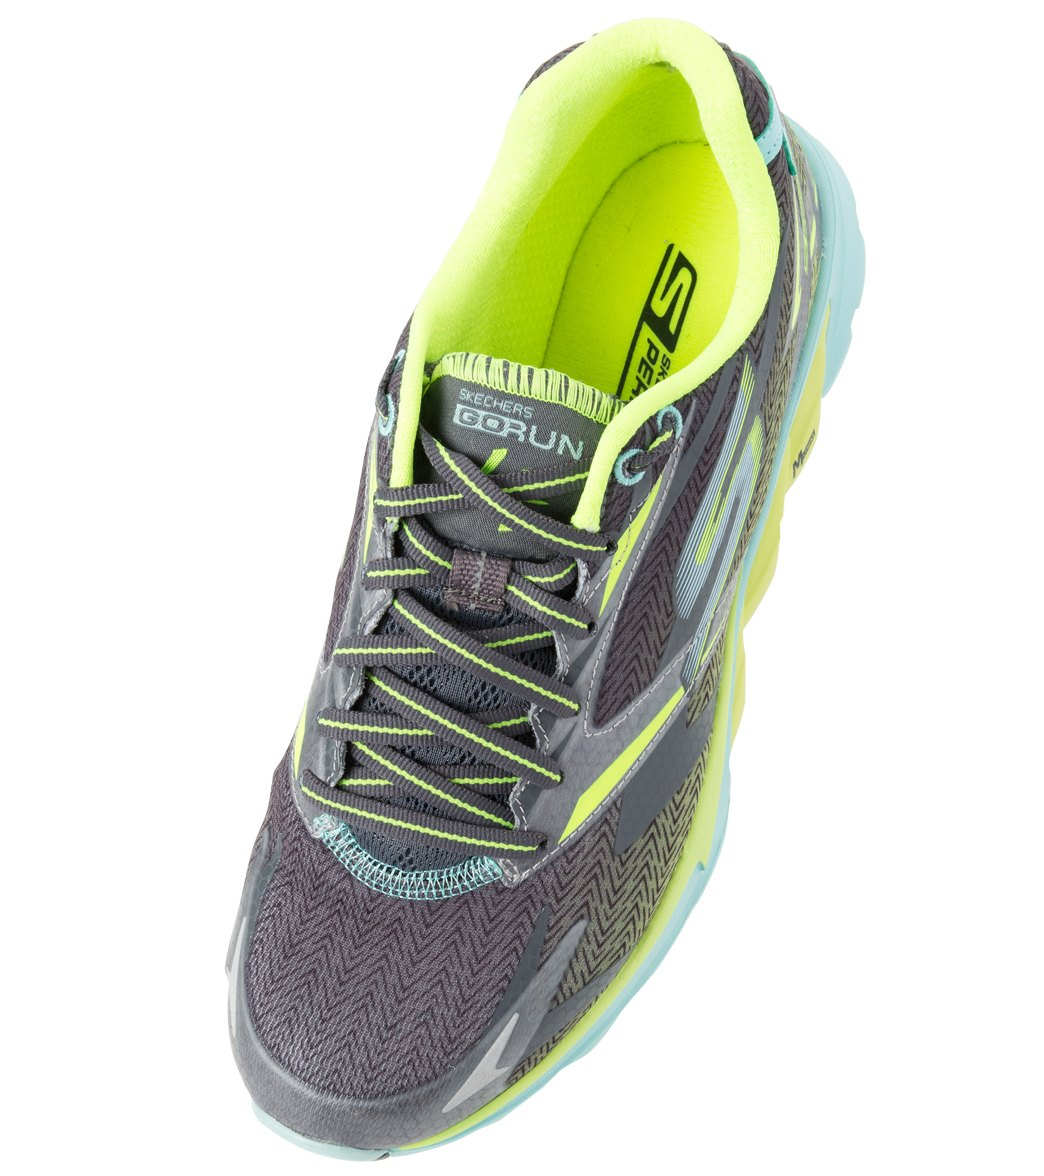 Best Value Road Running Shoes